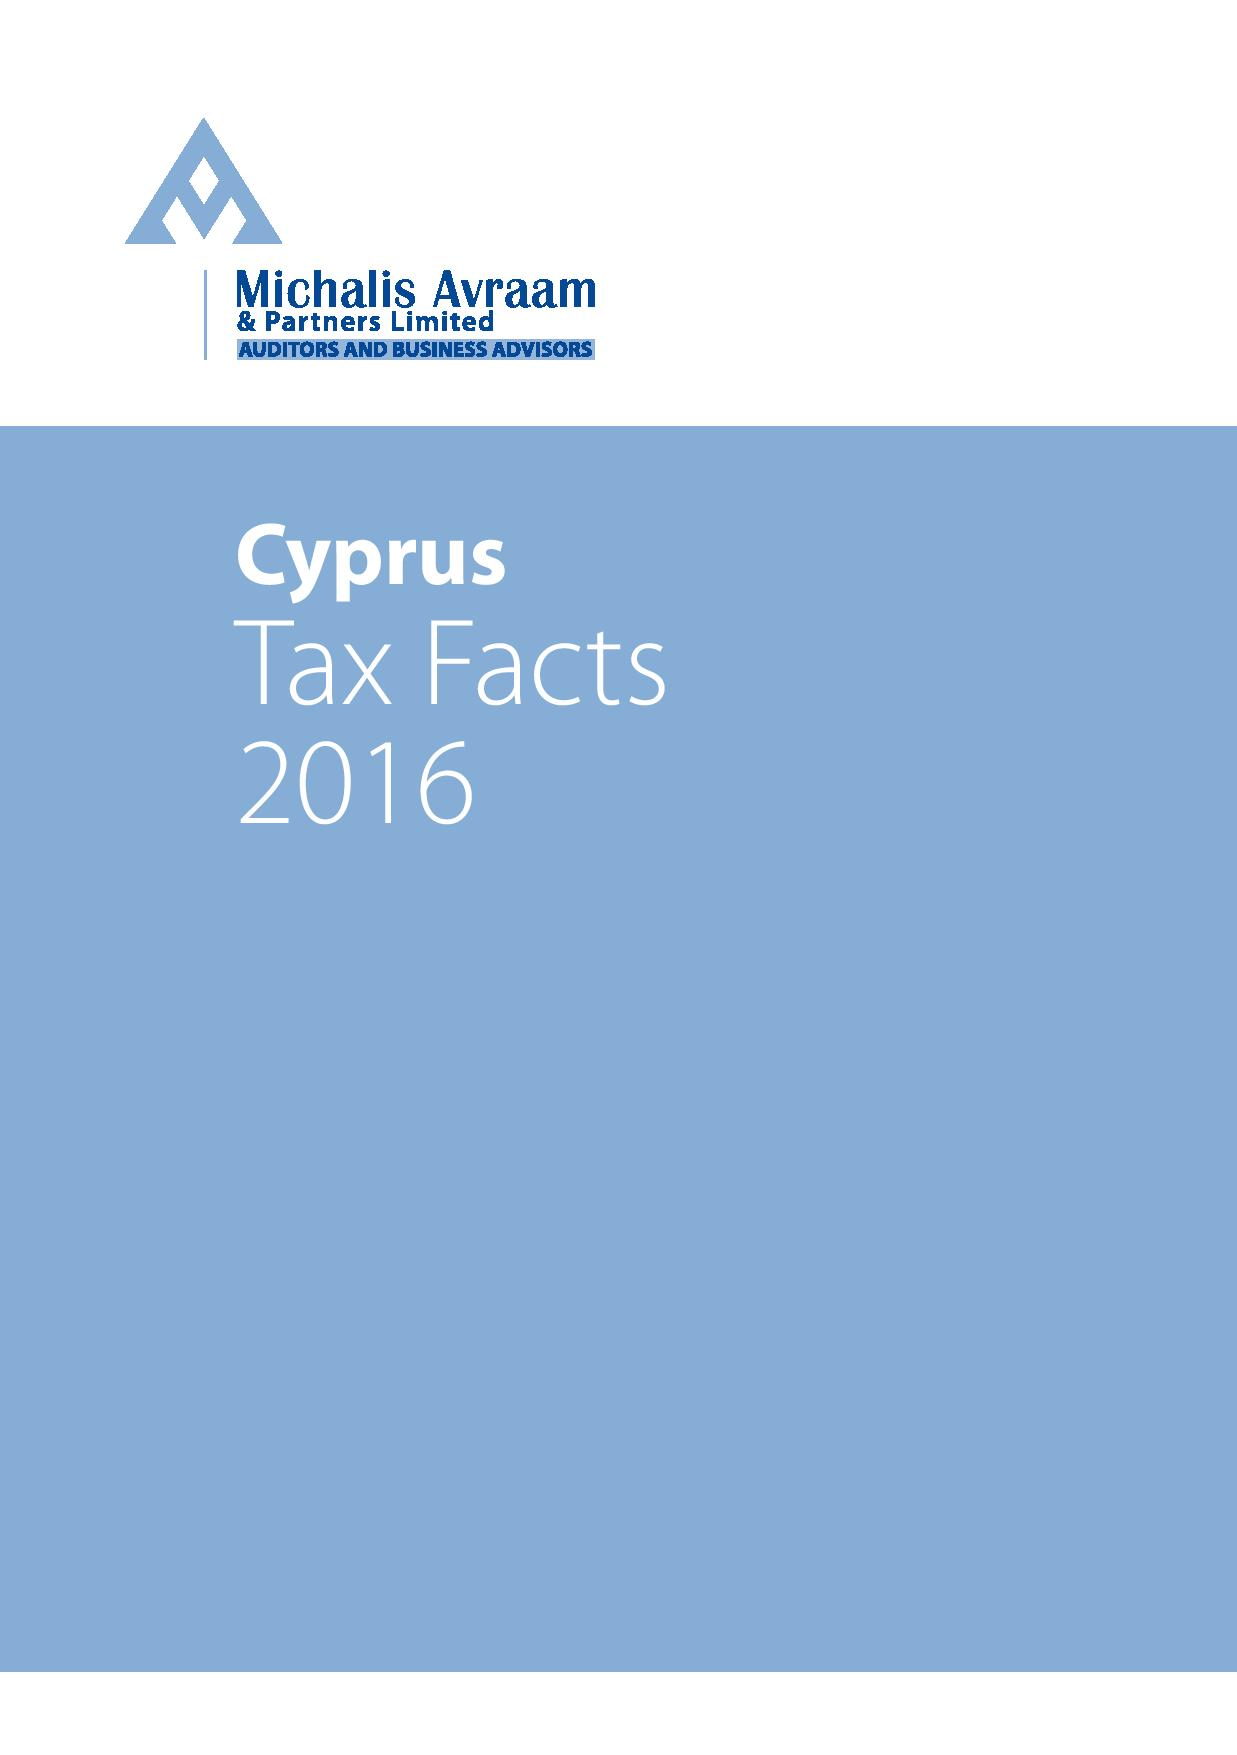 Cyprus Tax Facts: 2016 edition